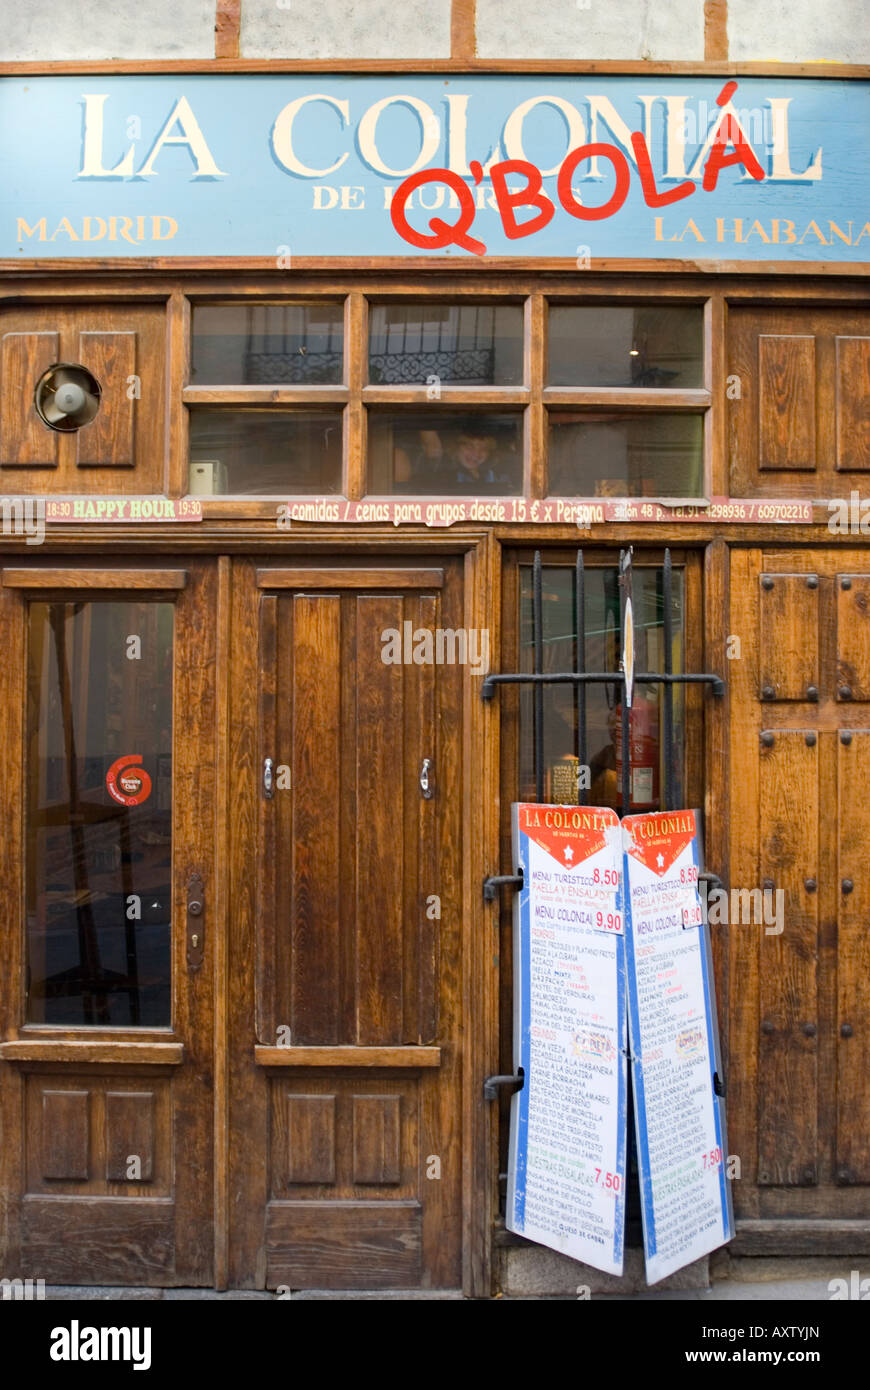 La Colonial Cafe Bar in Madrid, Spain Stock Photo: 16918604